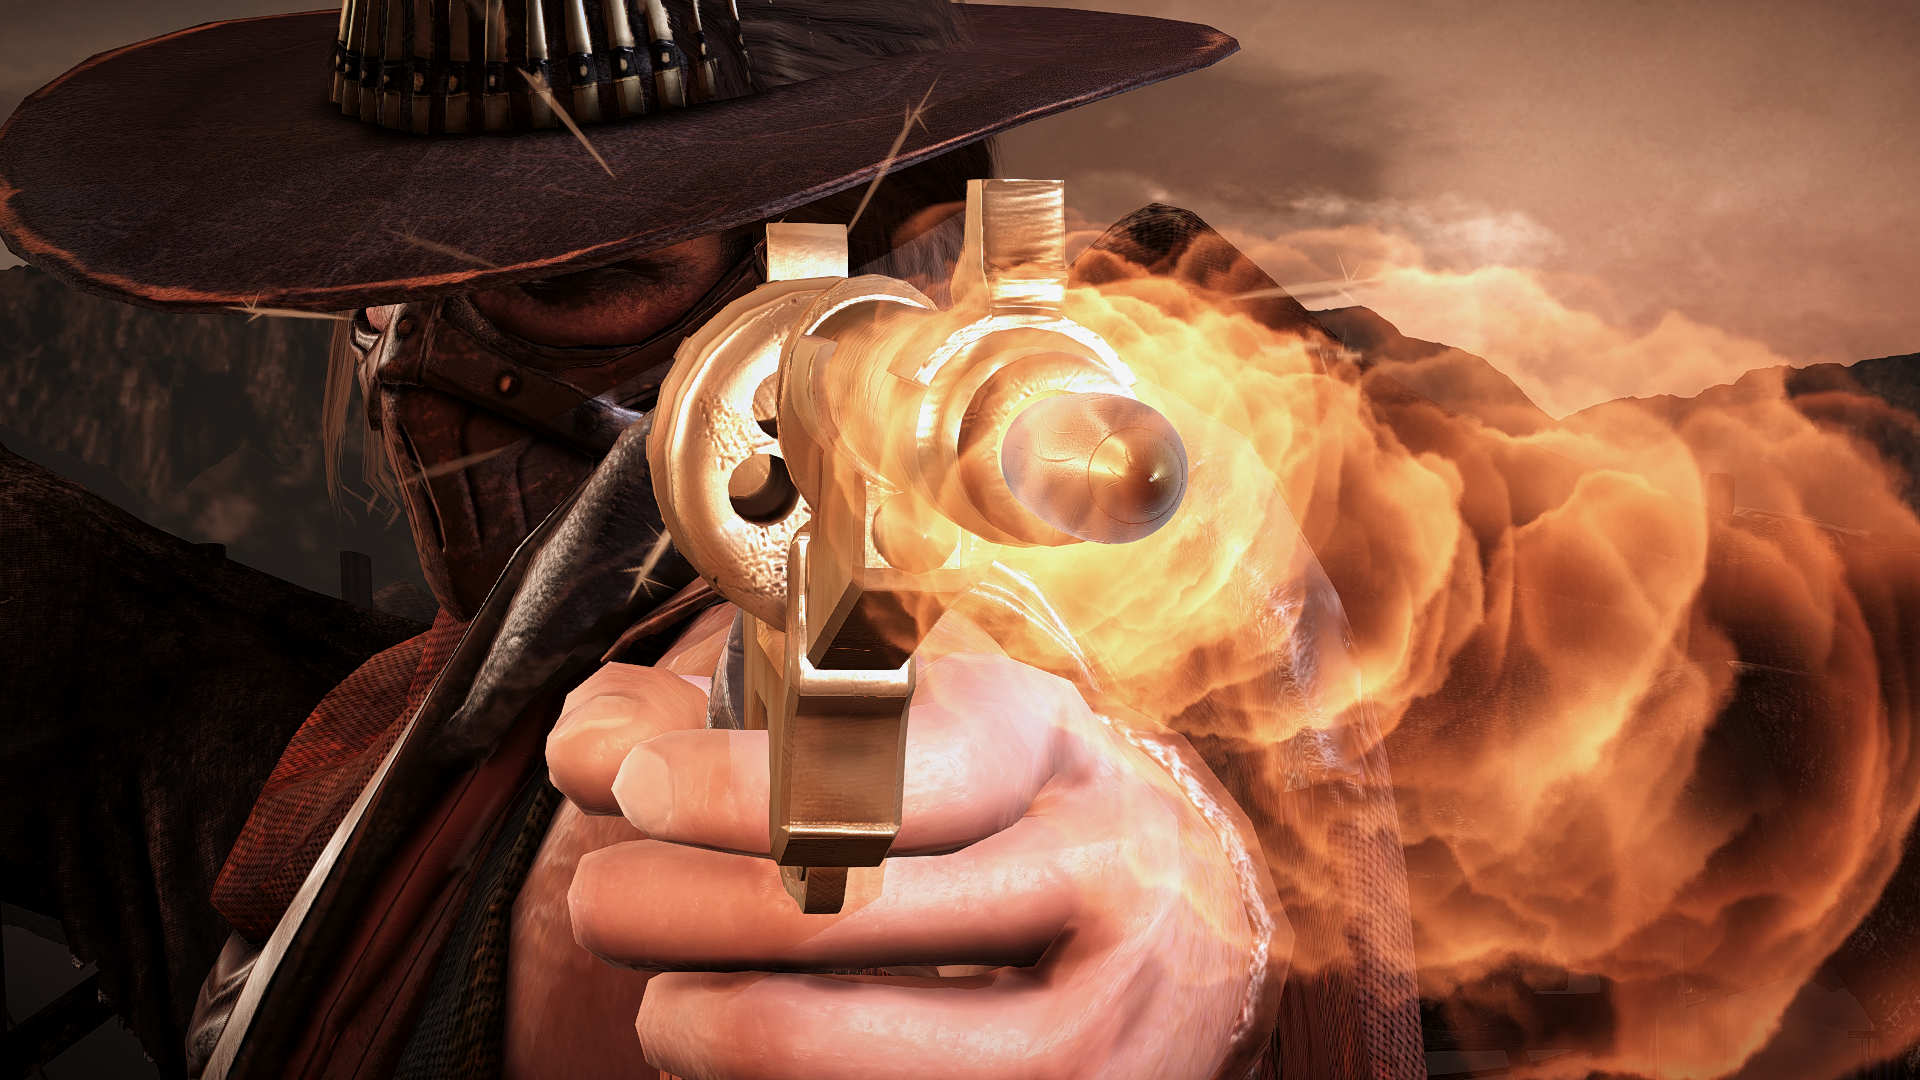 The Wild West Screenshot Contest - Page 2 MK10_2018-05-09_21-11-49